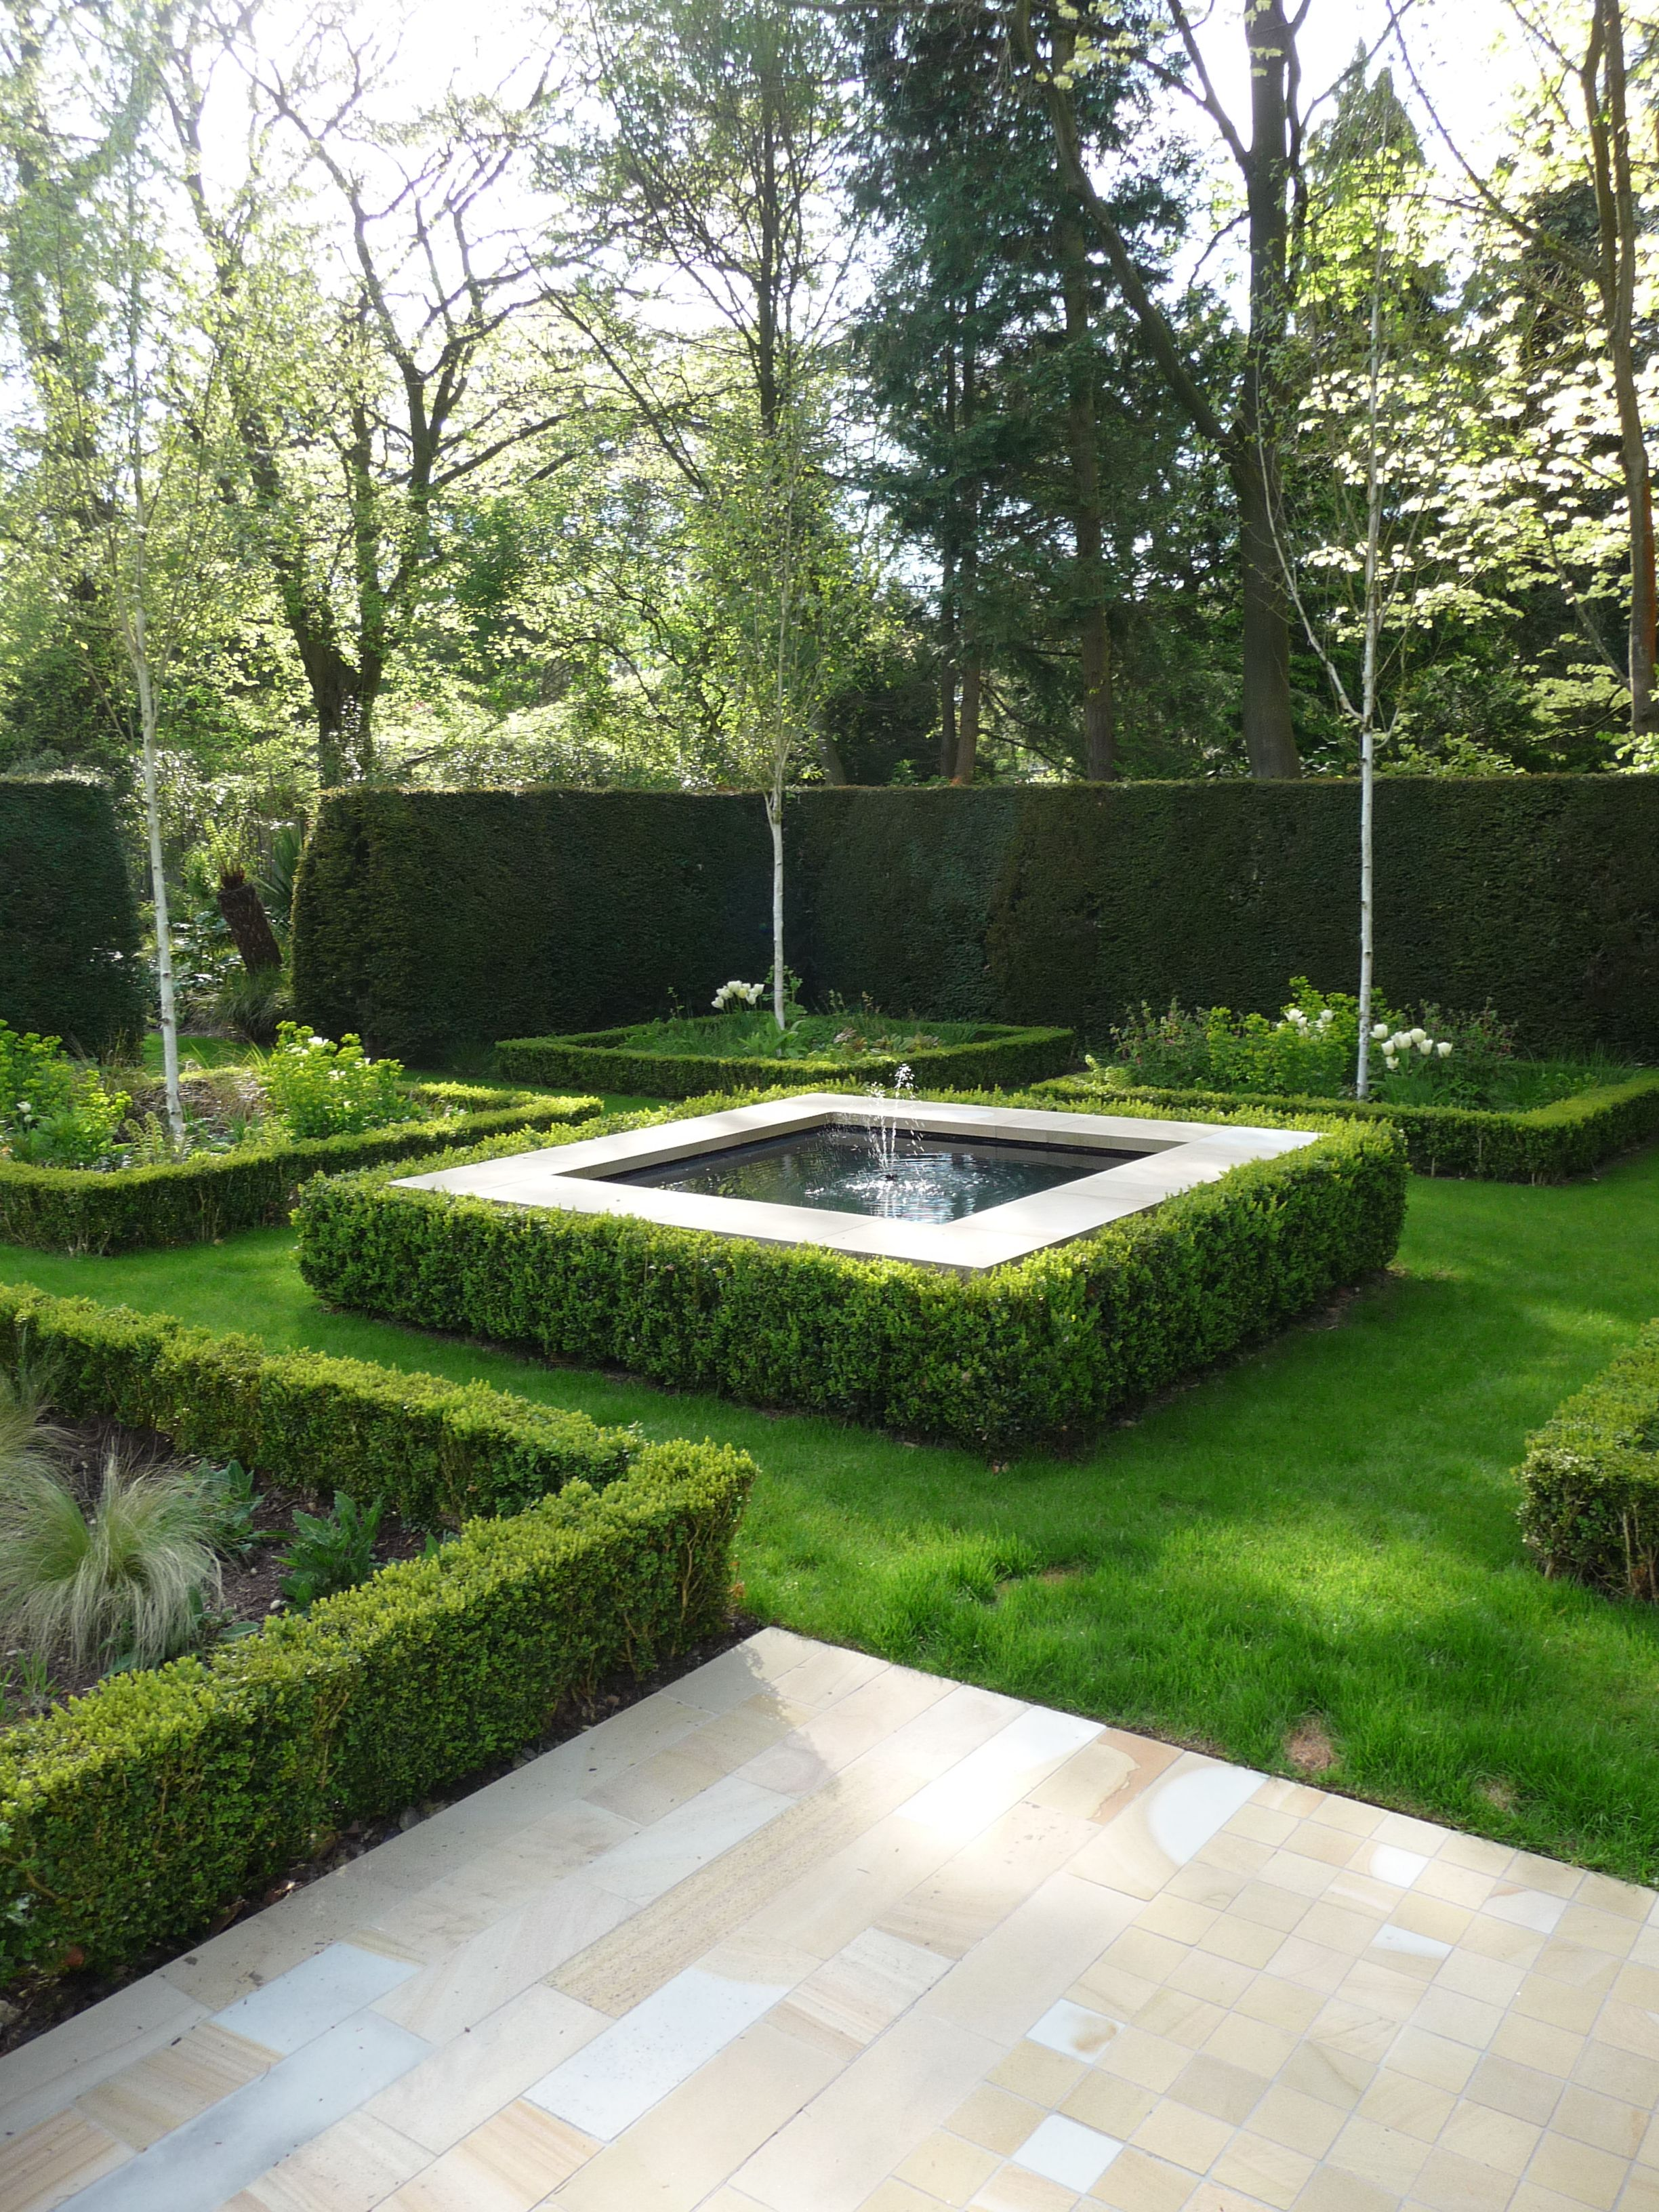 Andy Sturgeon Landscape & Garden Design (UK) / repinned on